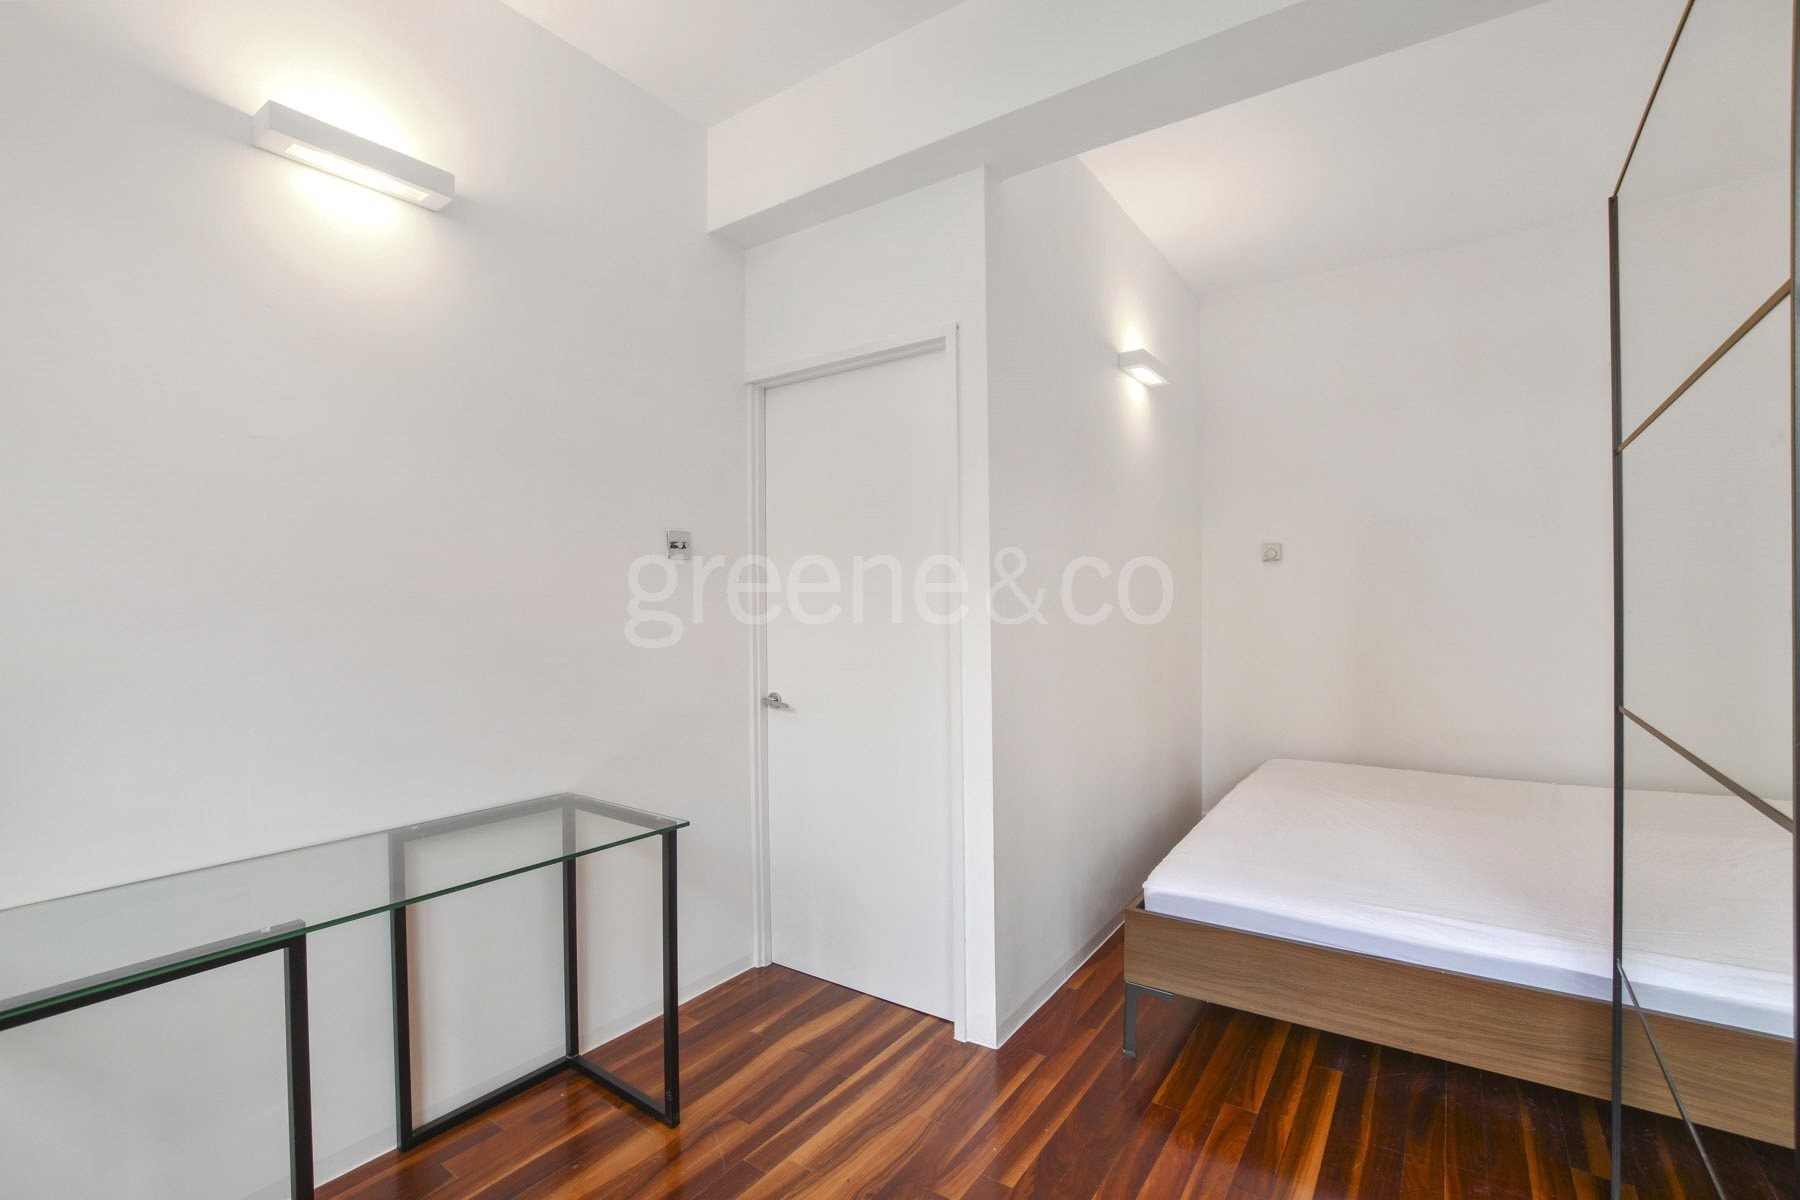 Best 1 Bedroom Apartment To Rent In Sunlight Square Bethnal With Pictures Original 1024 x 768